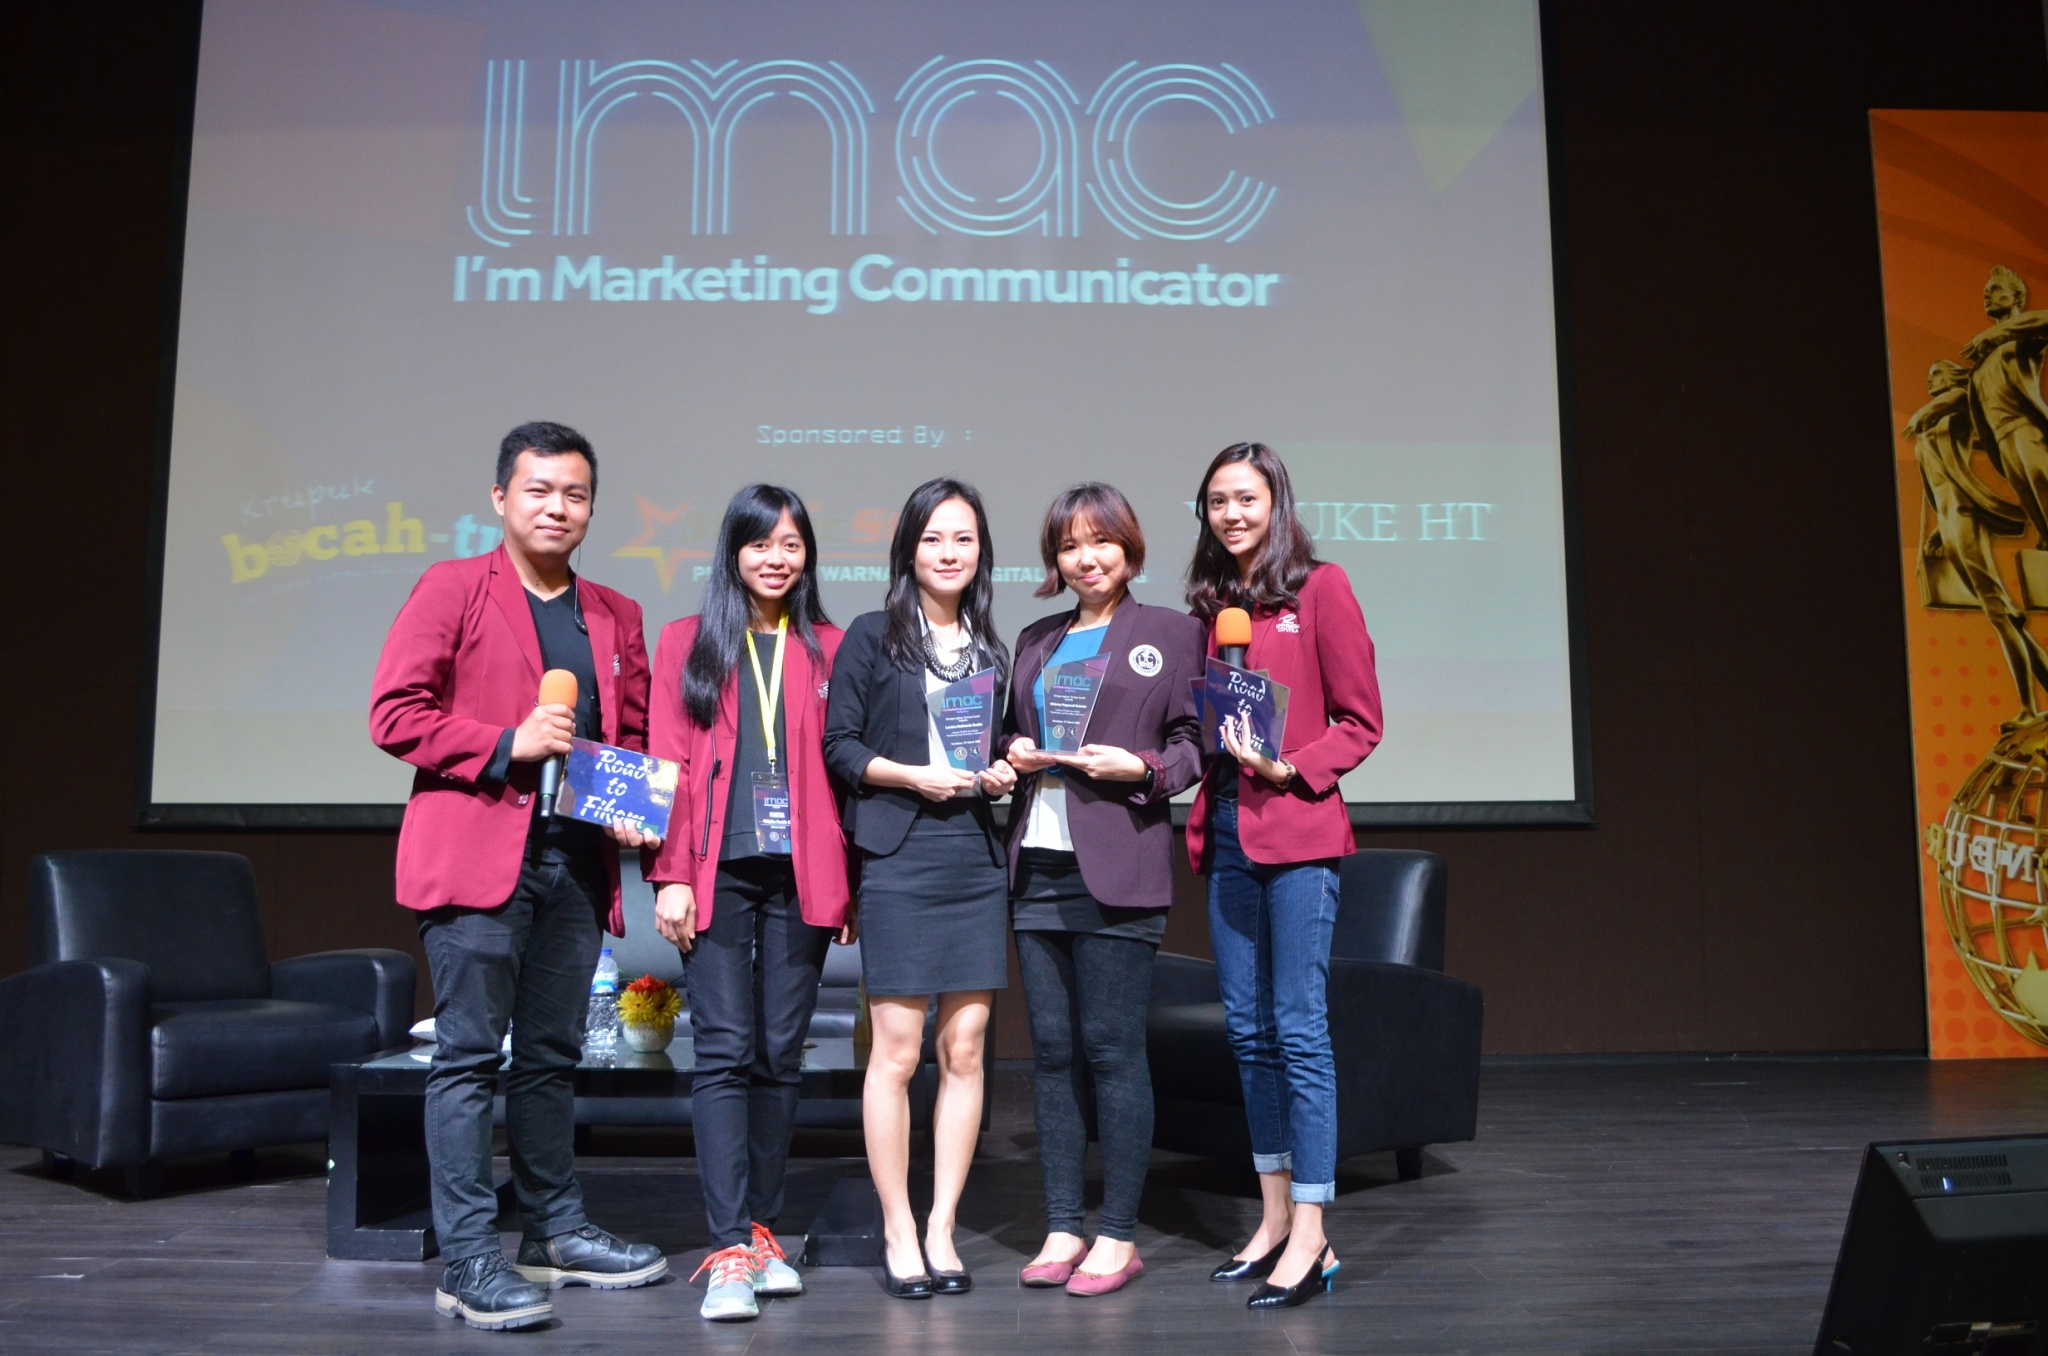 Learning to be a Marketing Communicator